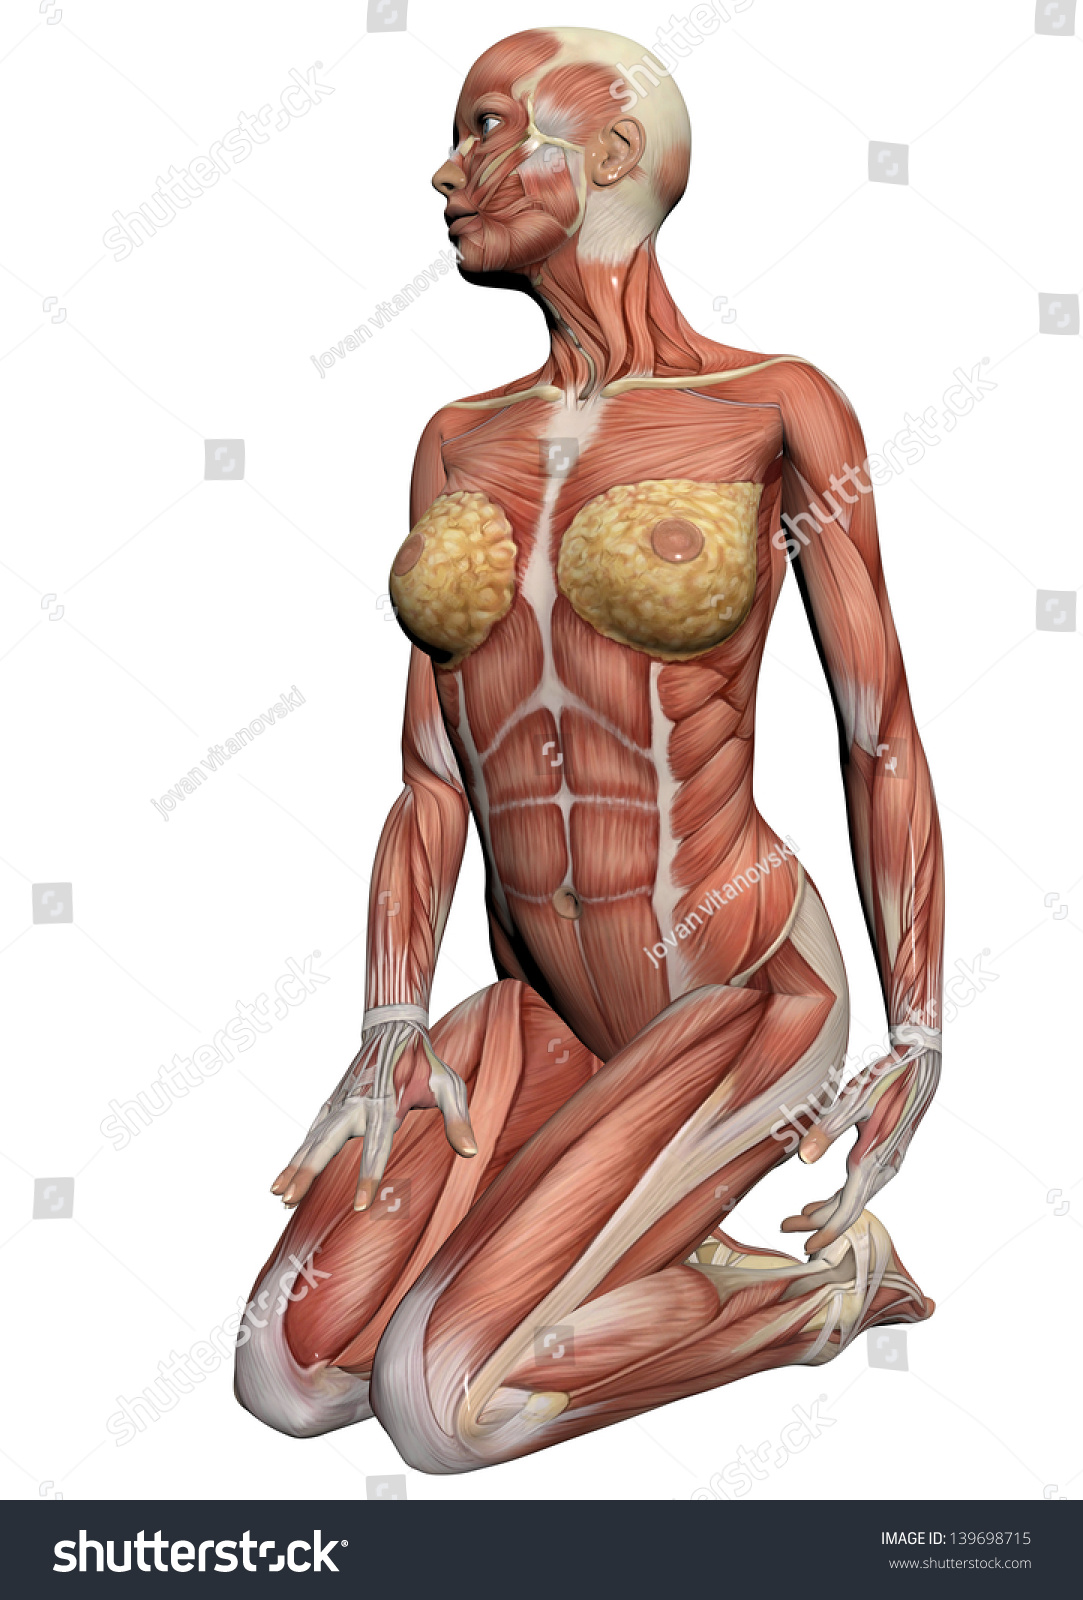 human anatomy female muscles made 3d stock illustration 139698715, Muscles